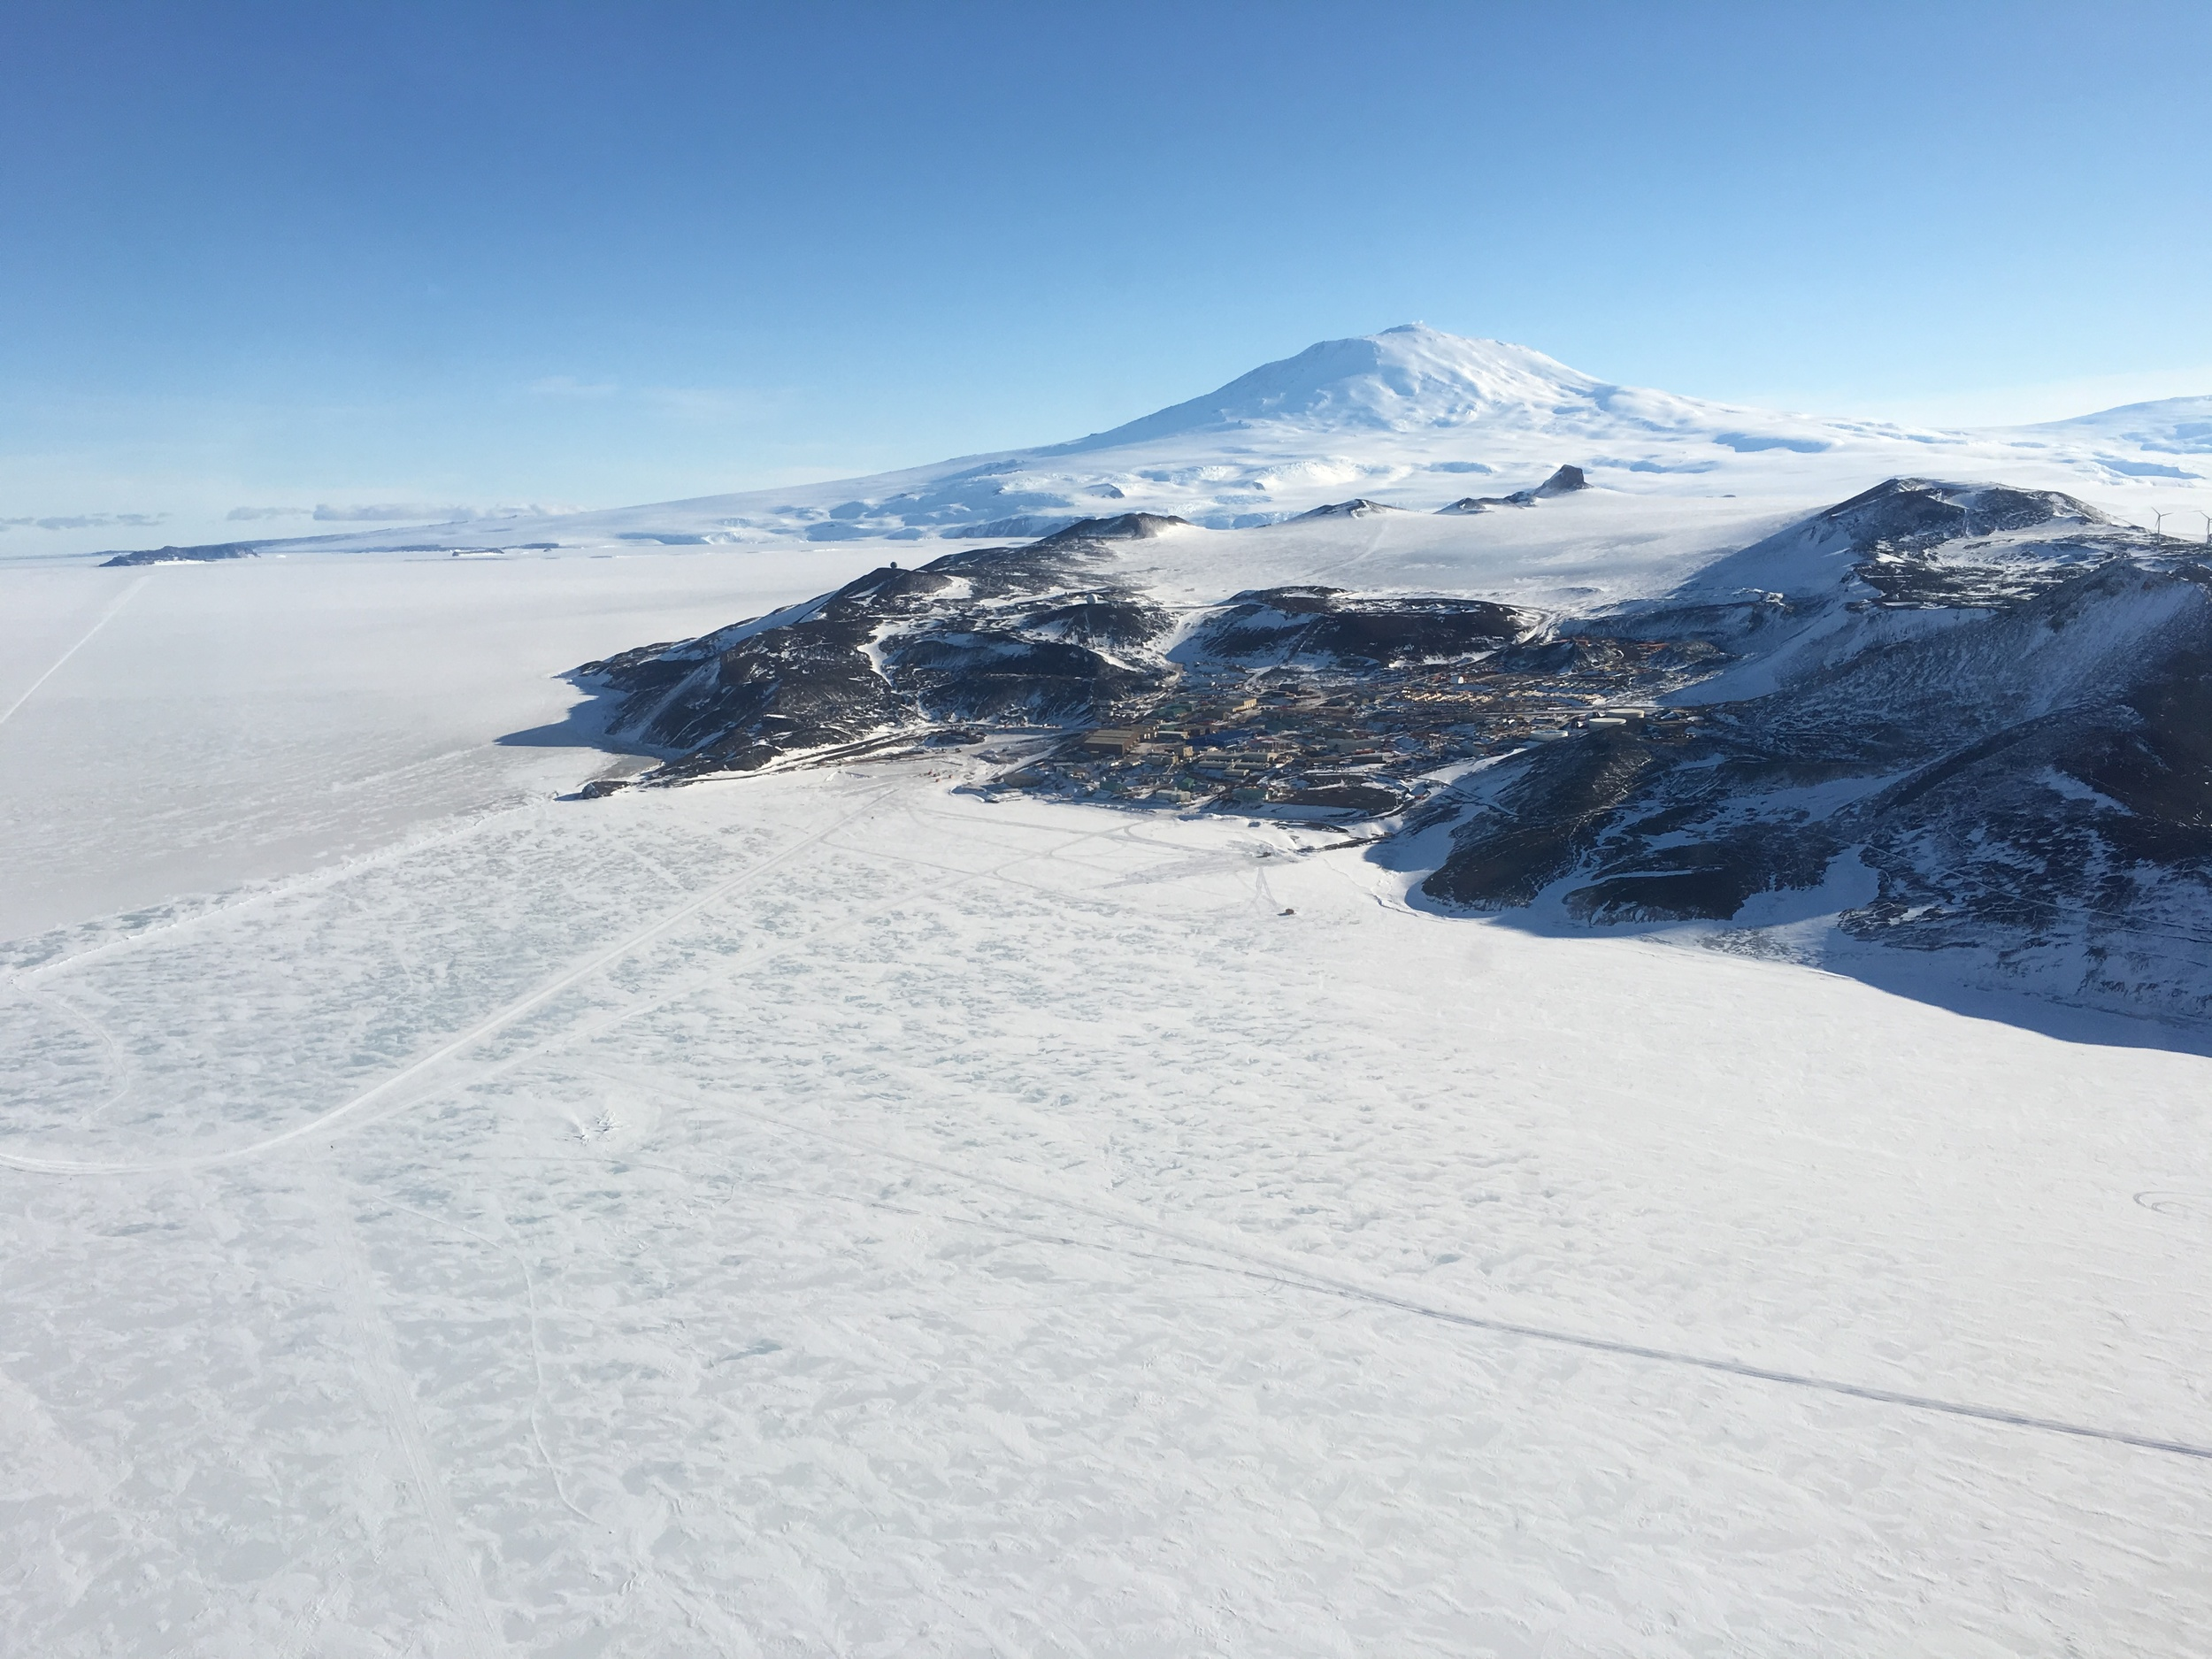 McMurdo Station viewed from the helo as we flew out to New Harbor.